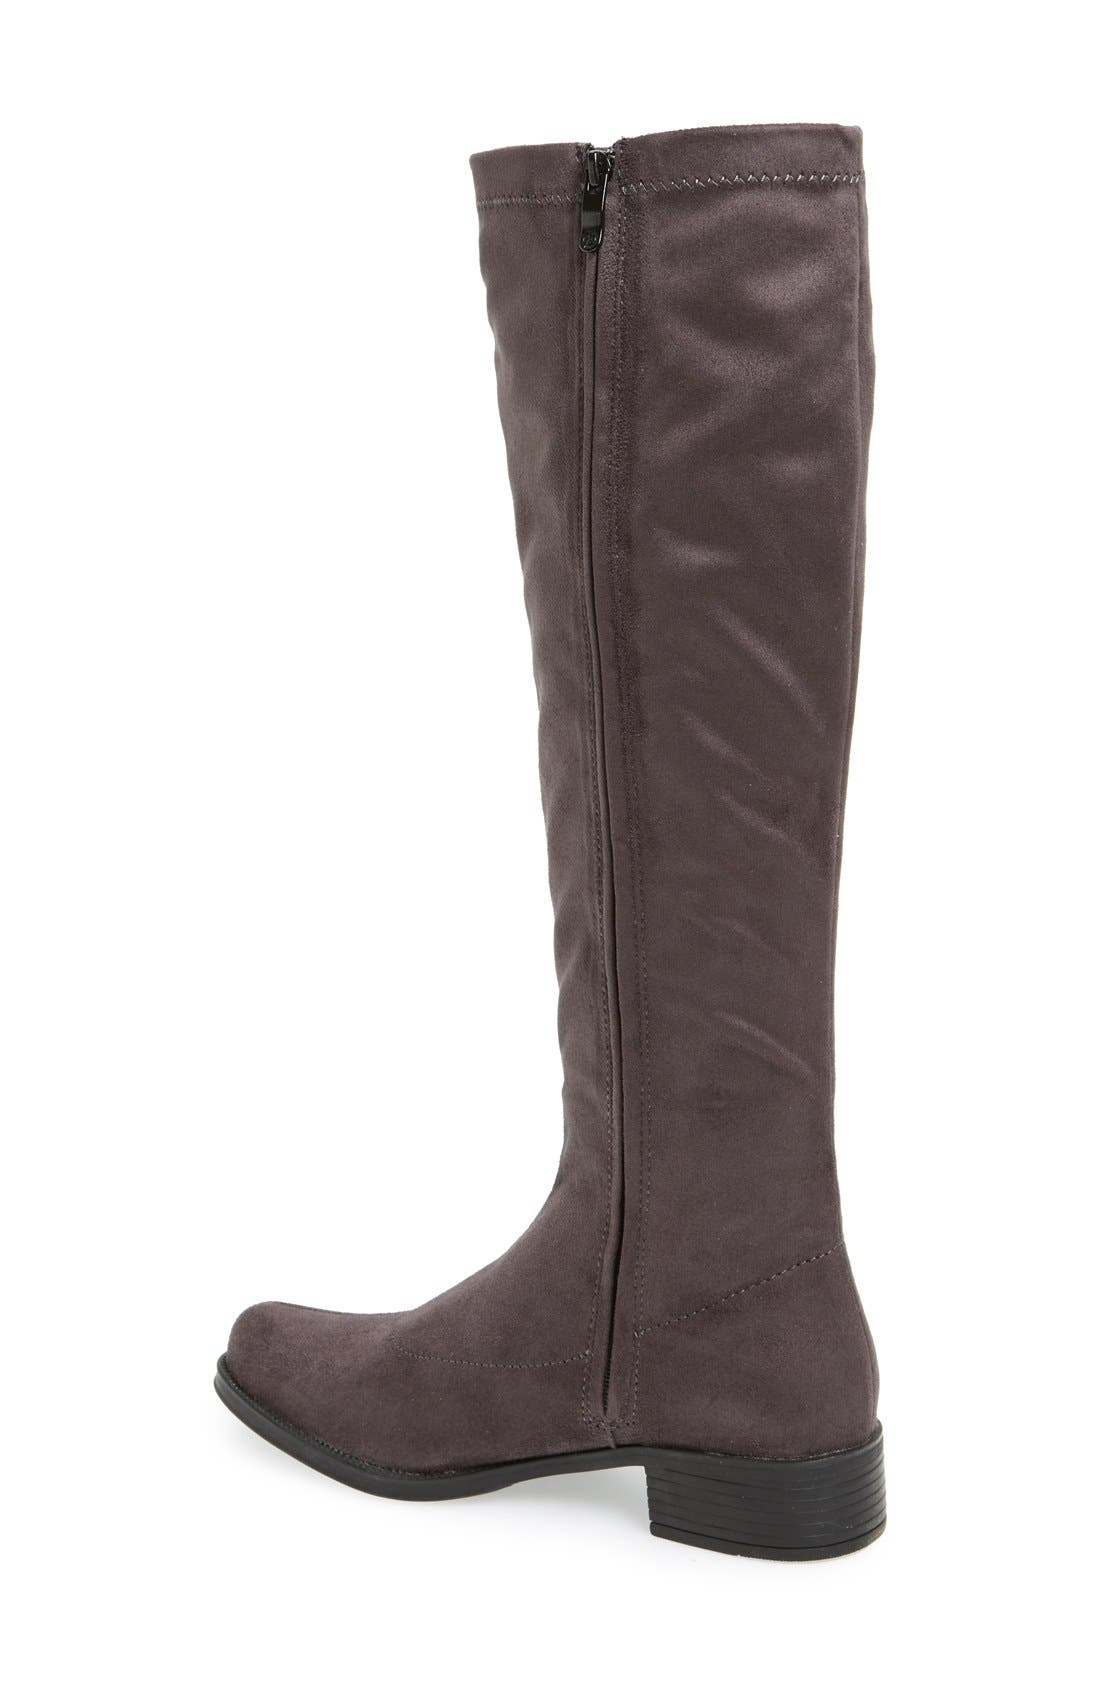 Alternate Image 2  - Bussola 'Sofia' Tall Boot (Women)